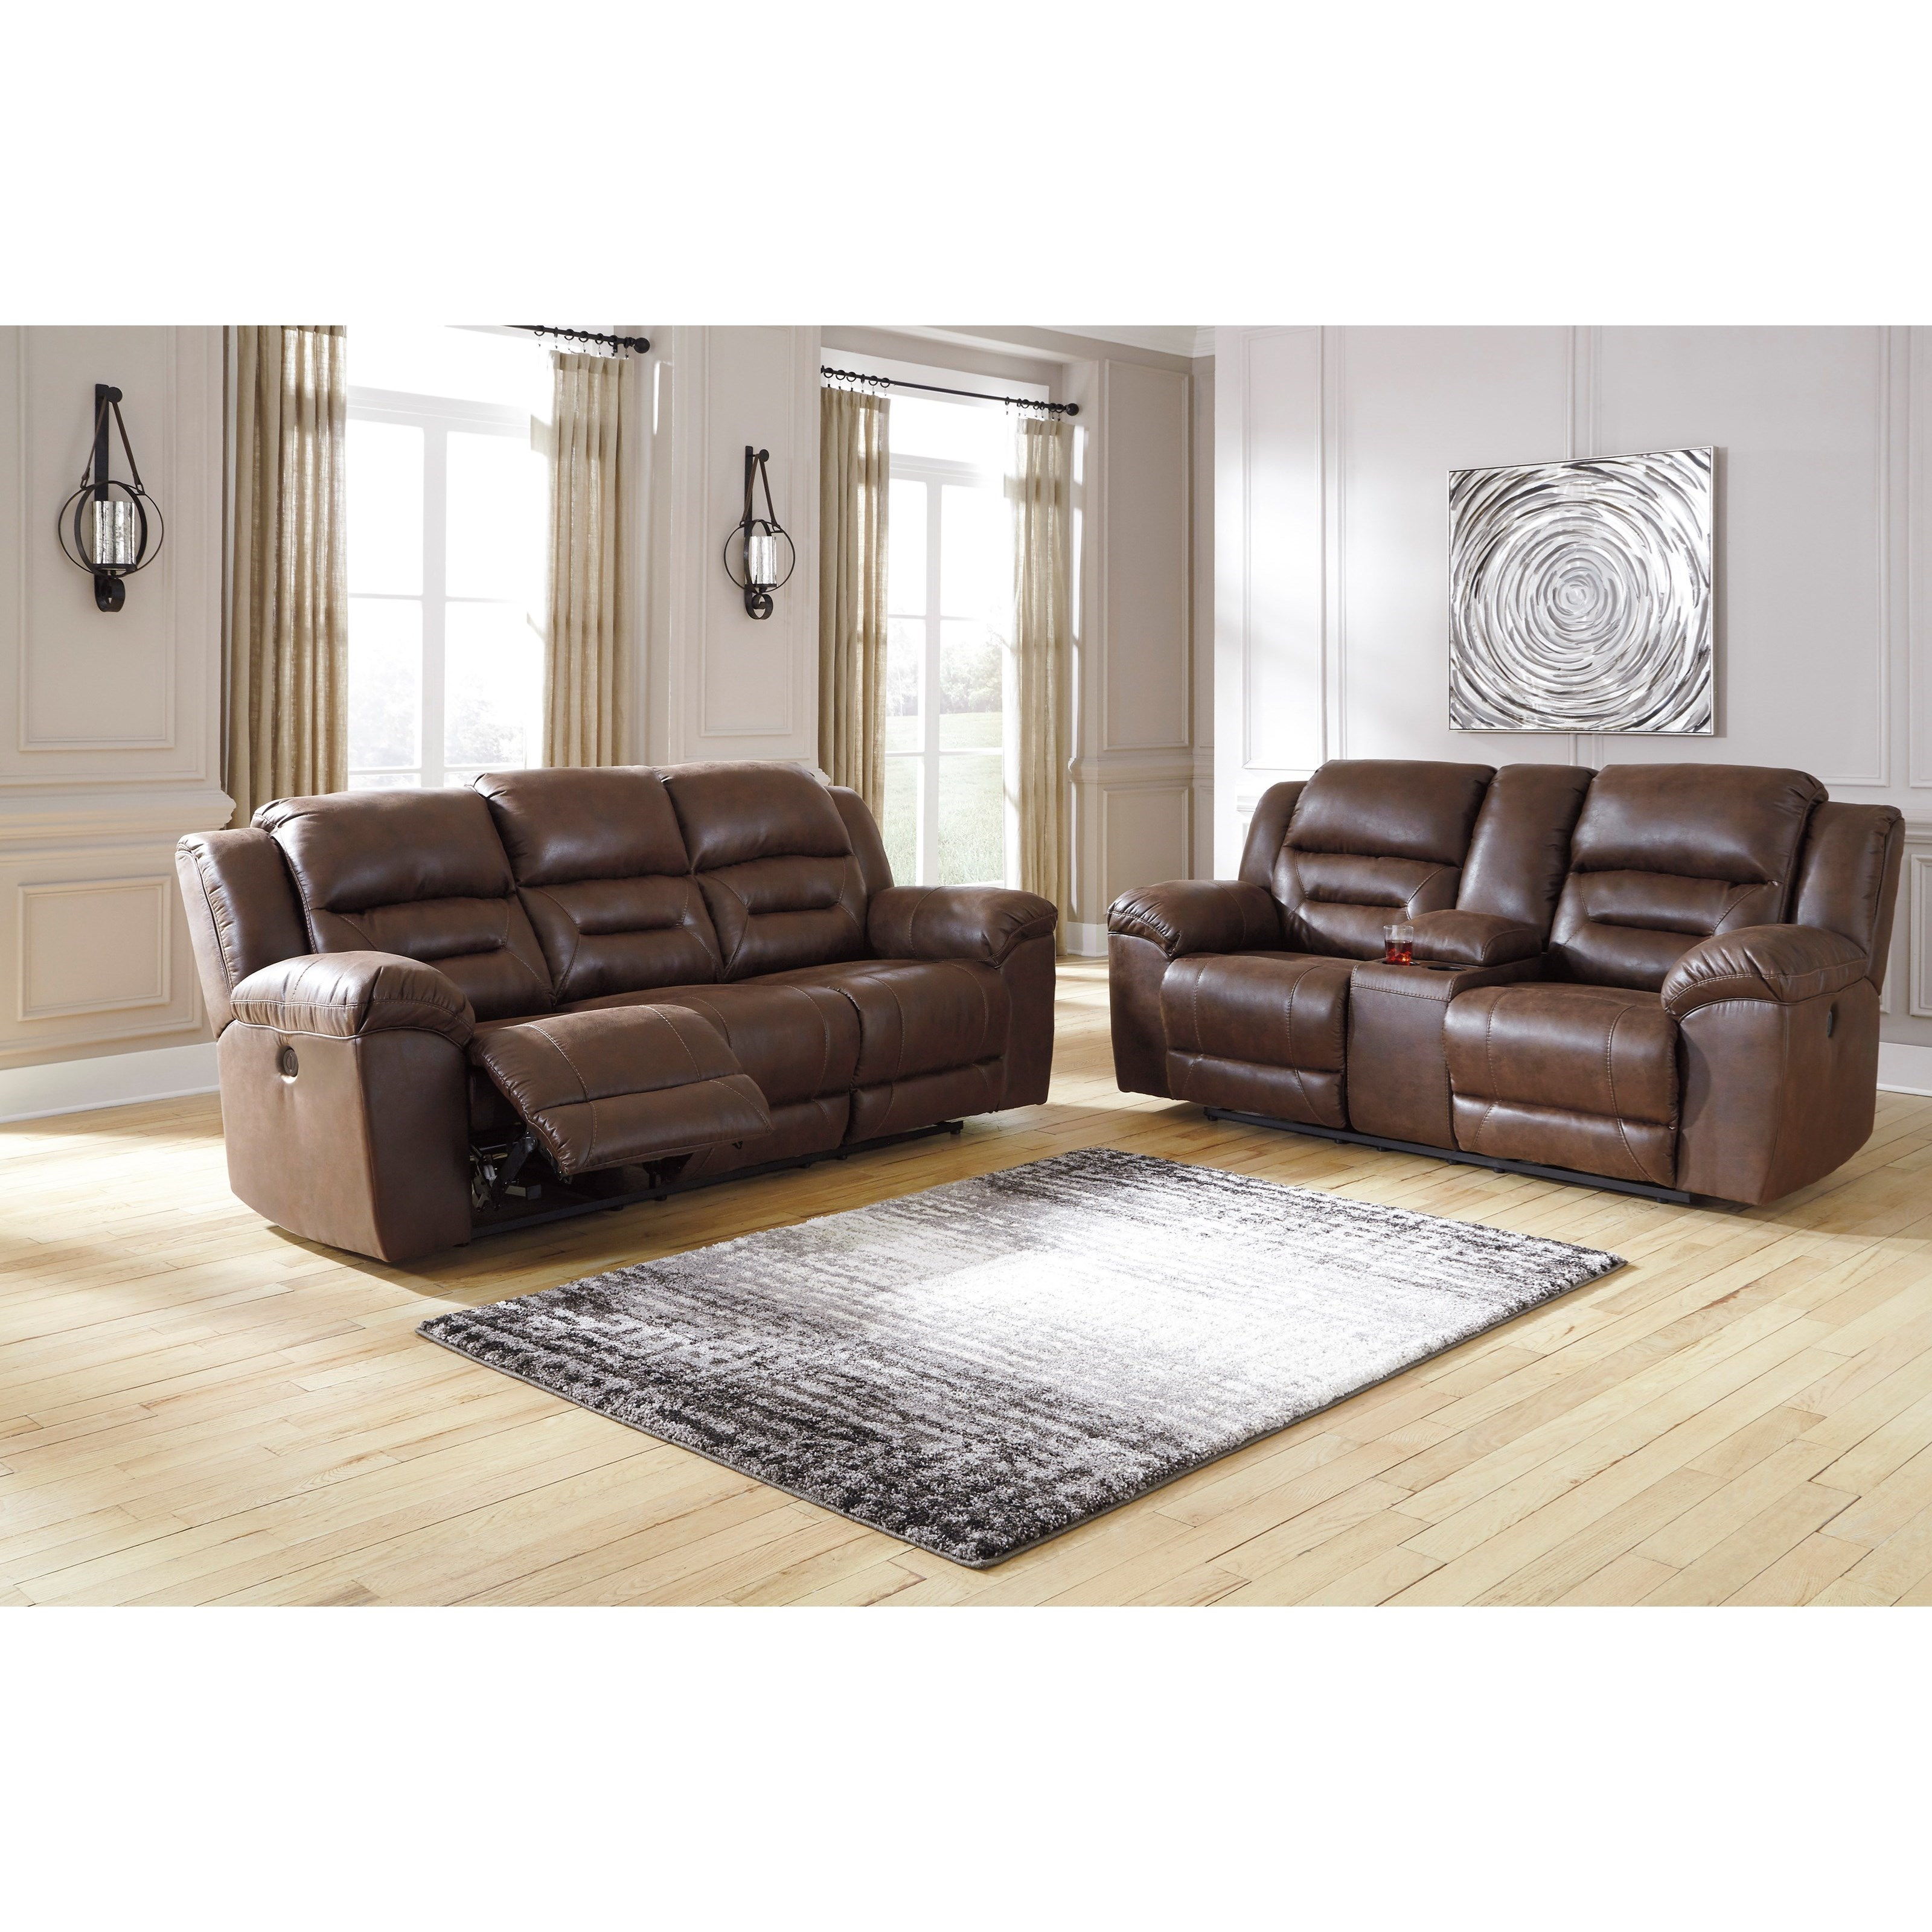 Stoneland Power Reclining Living Room Group by Signature Design by Ashley at Zak's Warehouse Clearance Center